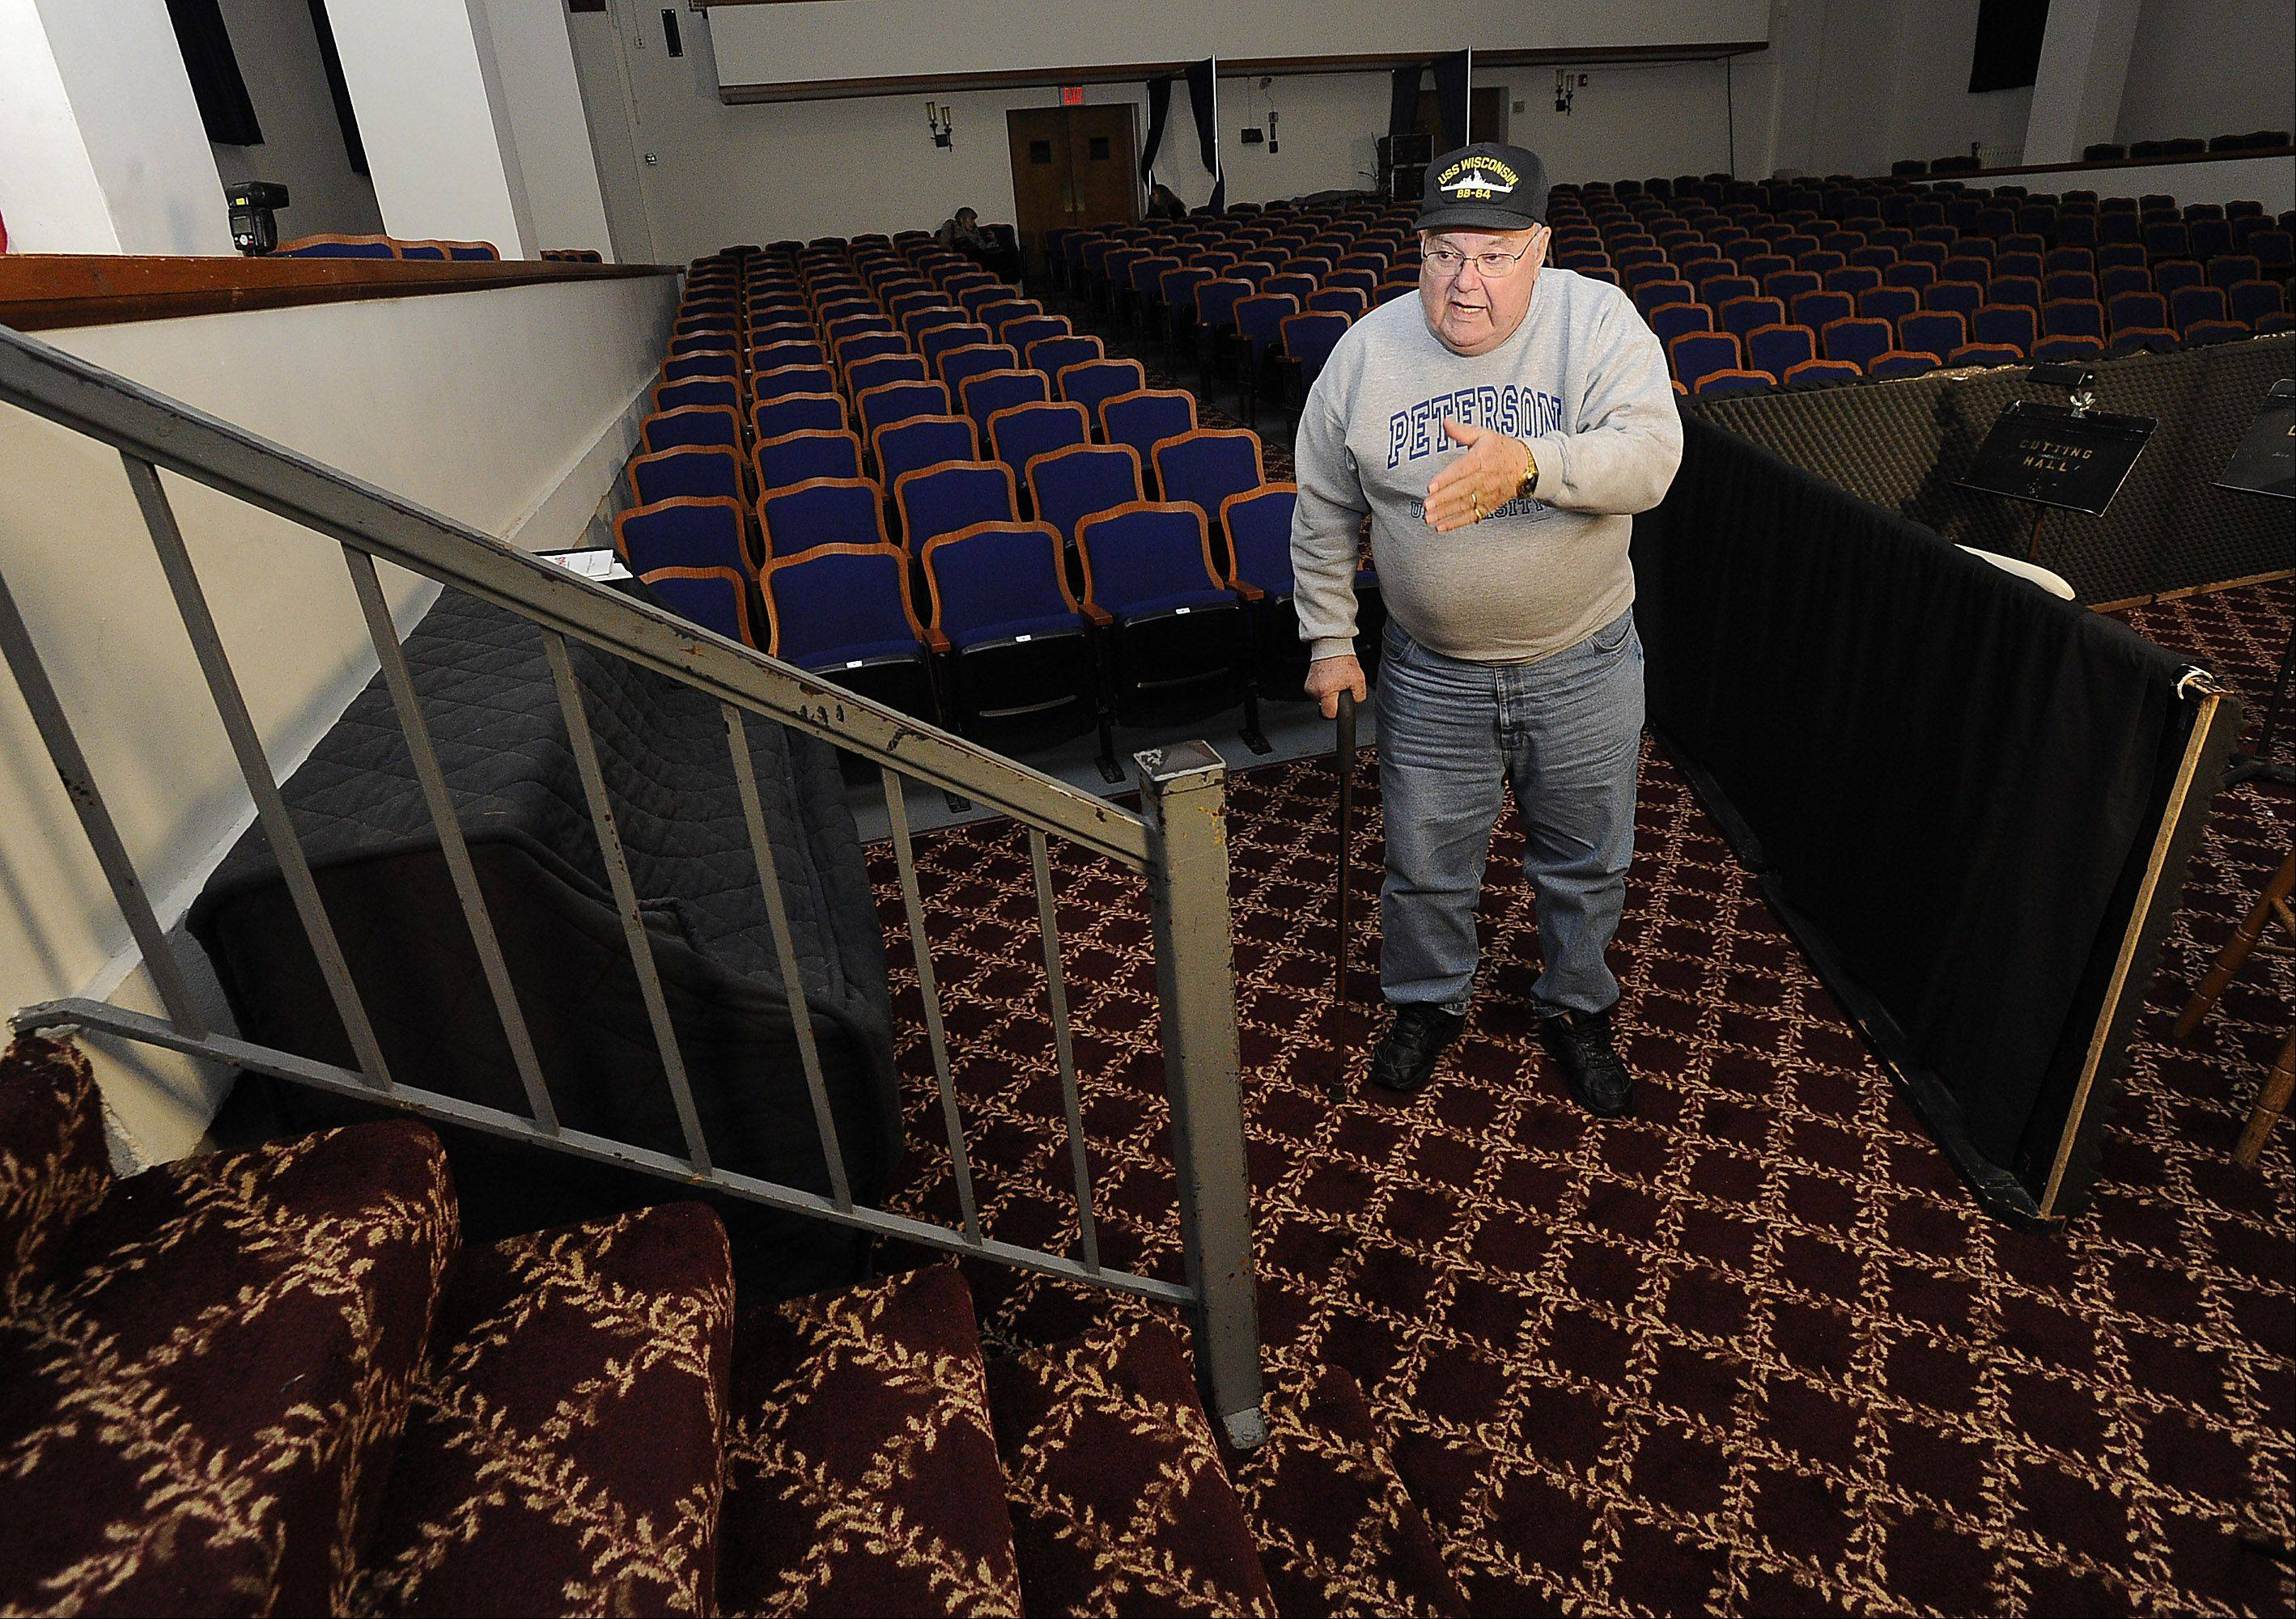 Former Palatine High School teacher Larry Peterson, of Lake Zurich, was monitoring a study hall on Nov. 22, 1963, when he heard President John F. Kennedy had been shot. Peterson is standing in the exact same spot in what is now Palatine's Cutting Hall where, 50 years earlier, he was told the news by a student standing on the bottom step.